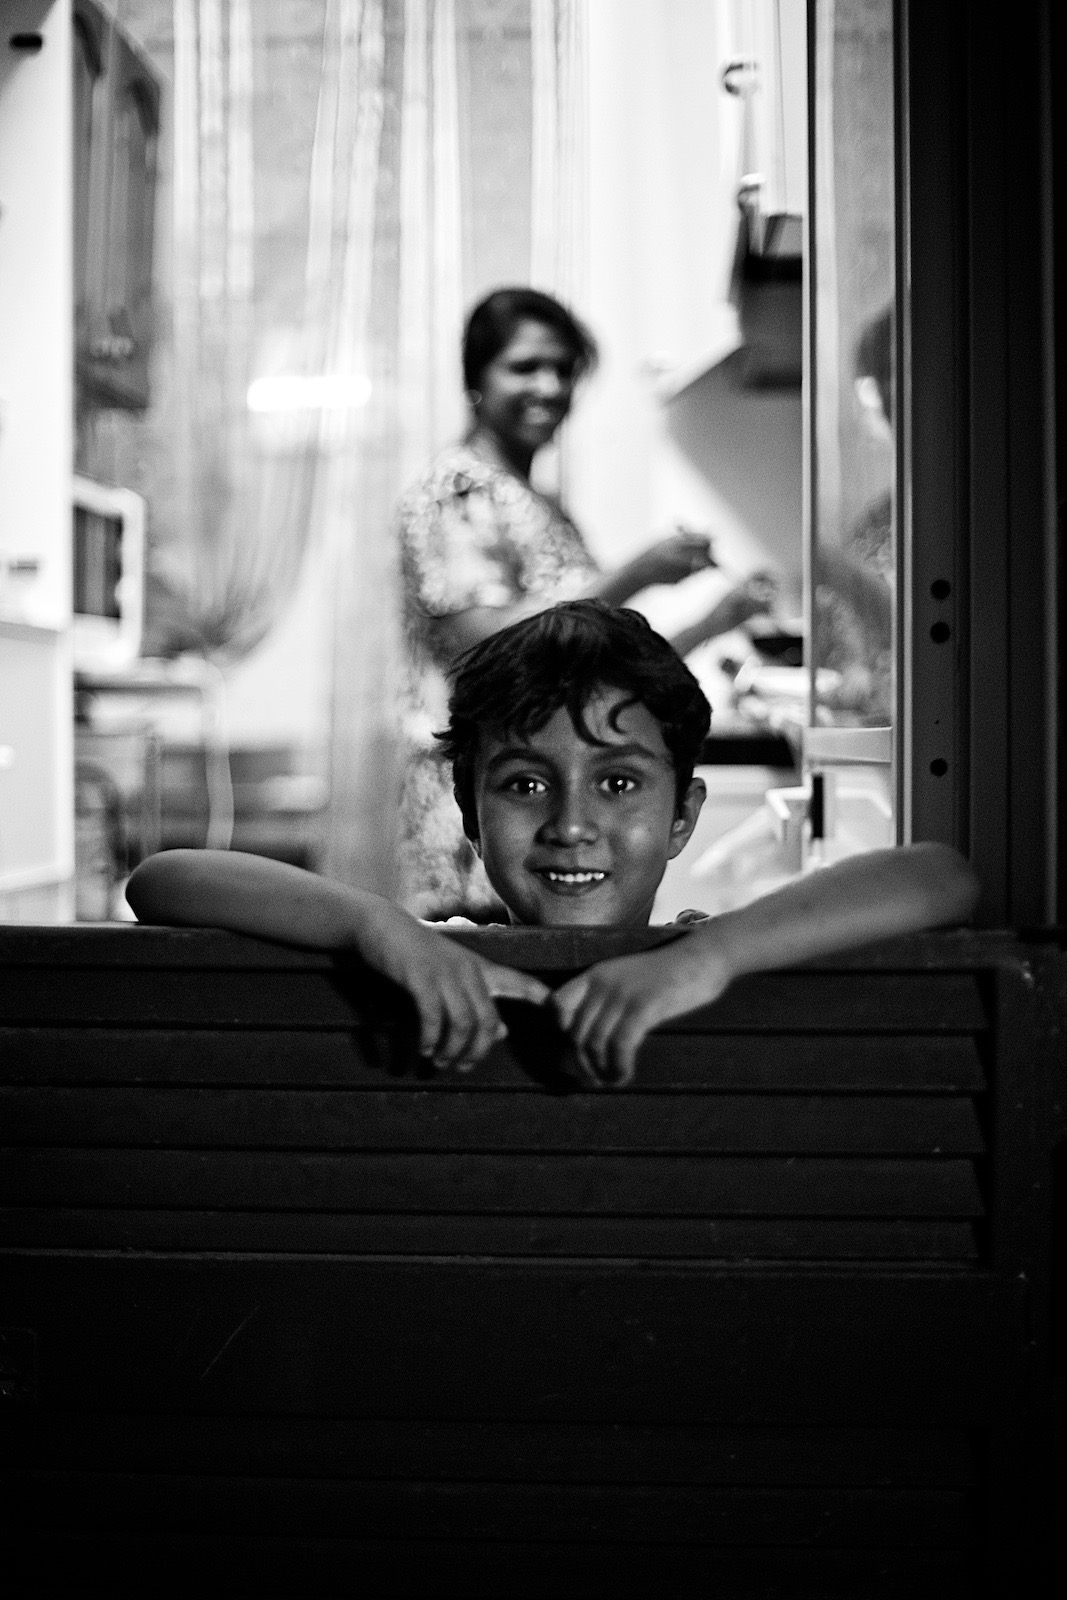 faces-of-napoli-denis-bosnic-photography-naples-bw-spaccanapoli-summer-64.jpg